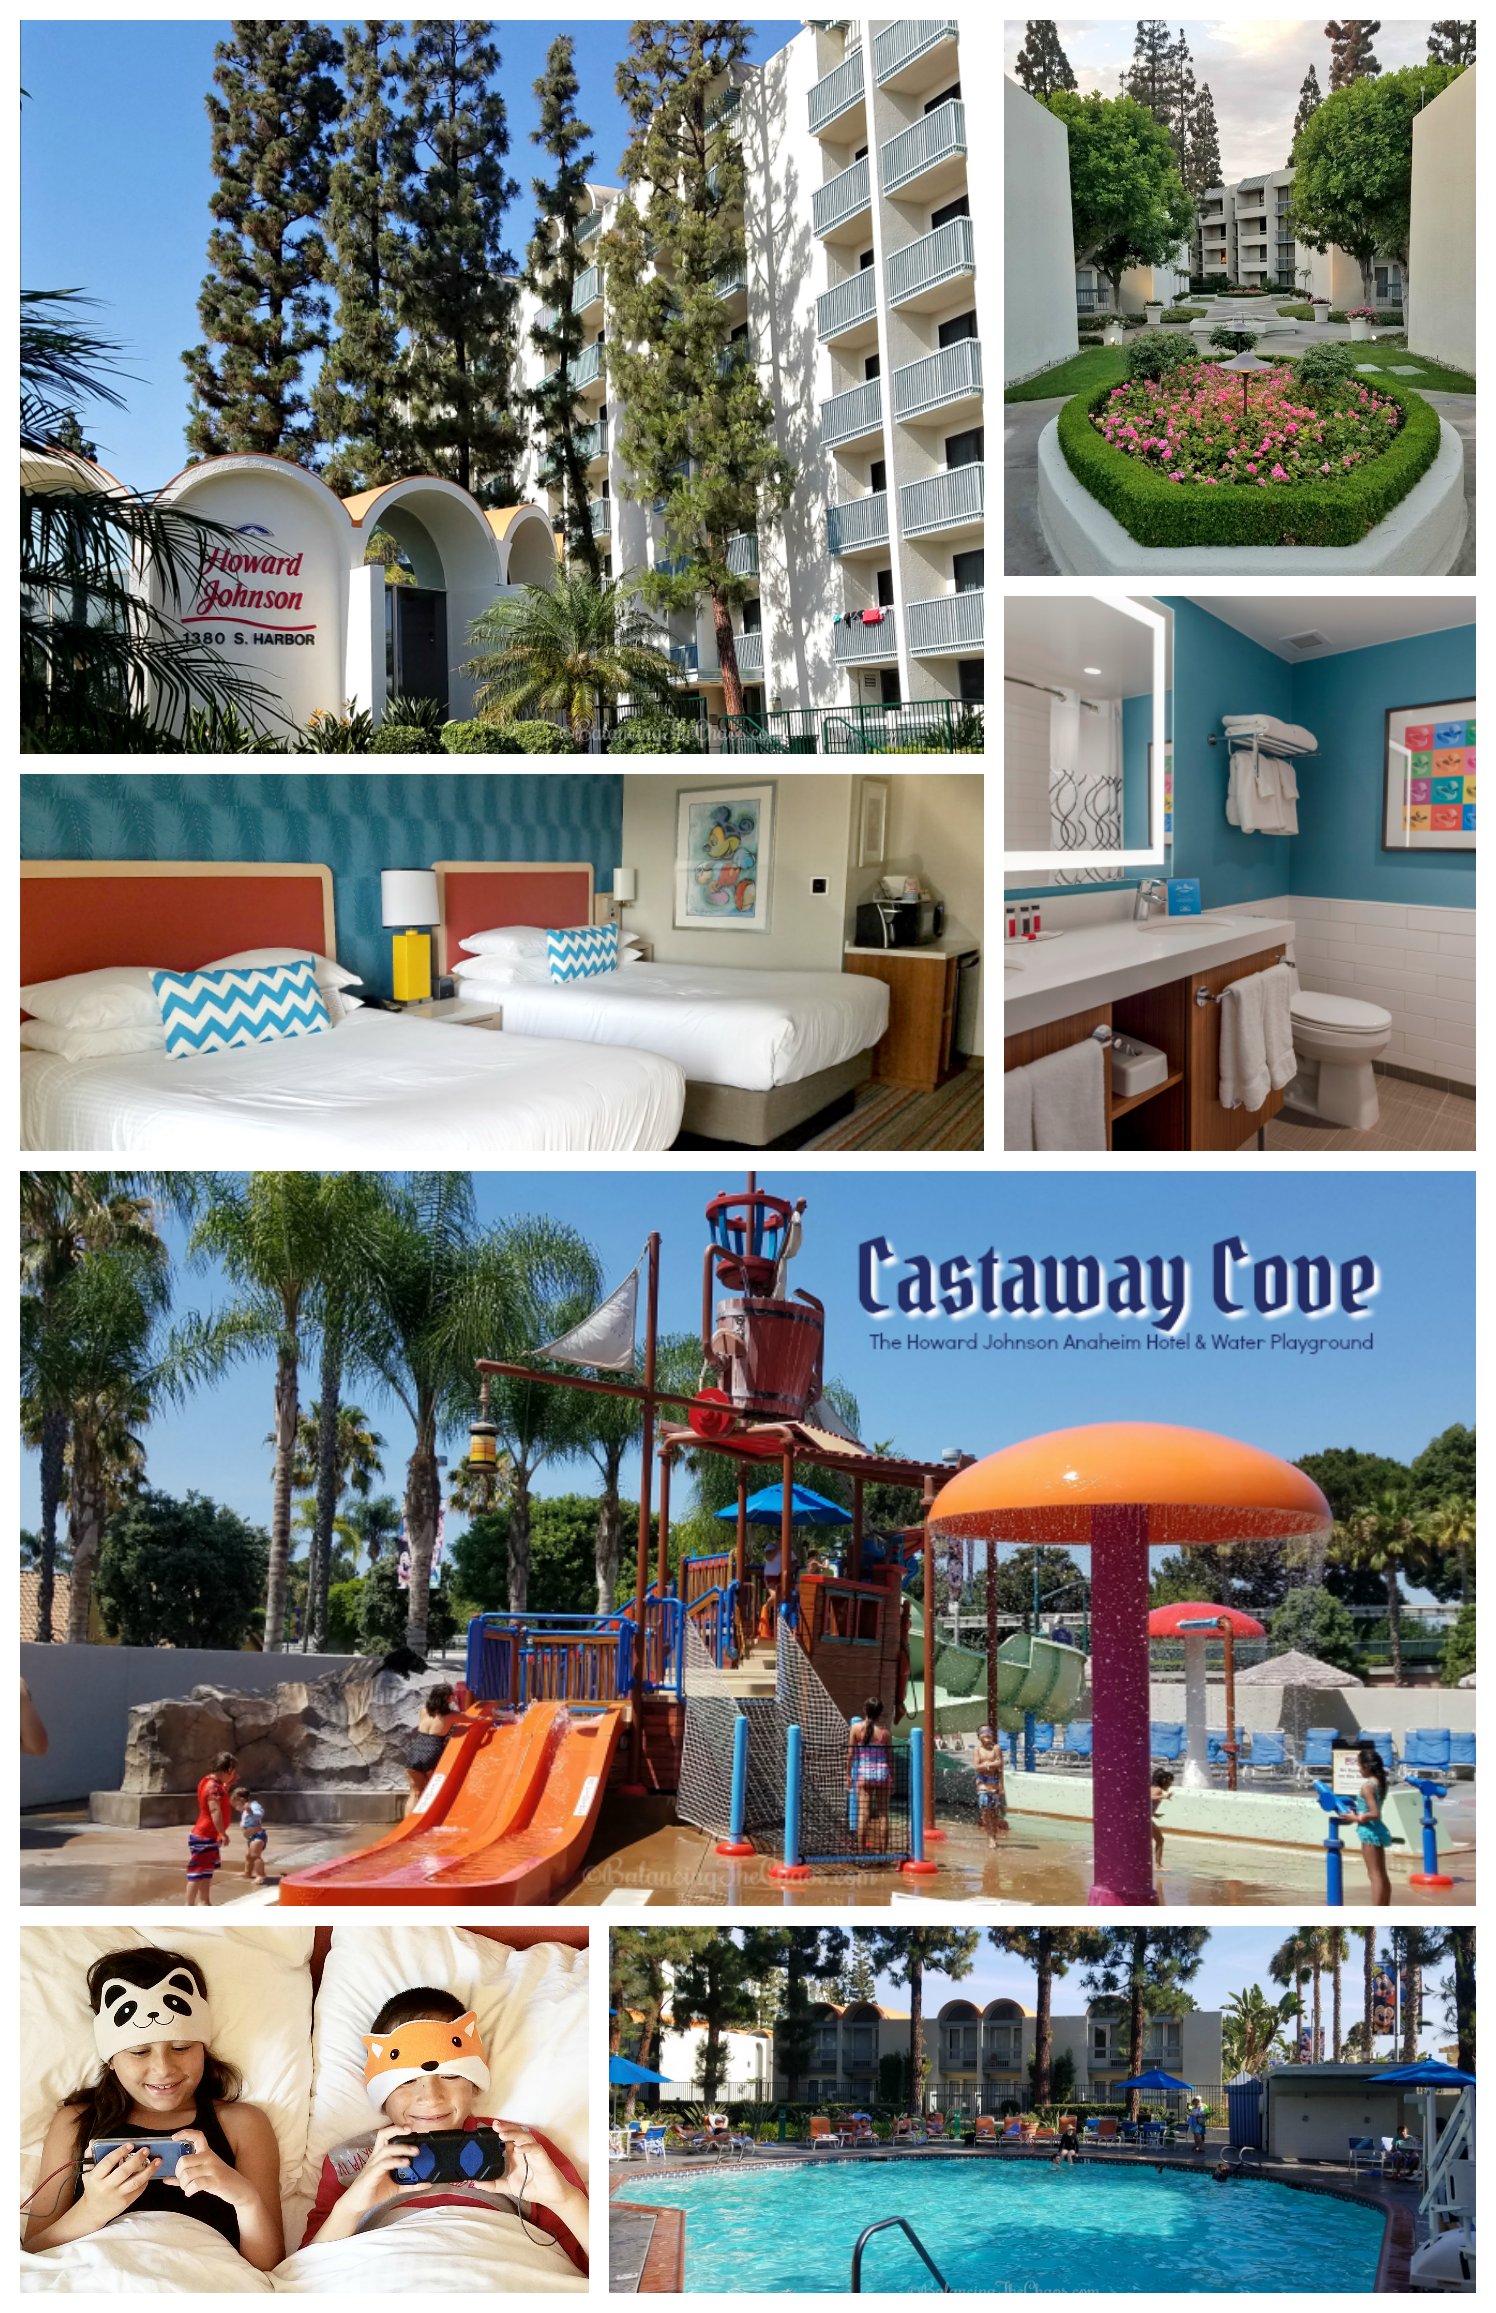 Howard Johnson Anaheim Hotel & Water Playground offers guests to newly remodeled, fun retro rooms and is walking distance from Disneyland and restaurants.